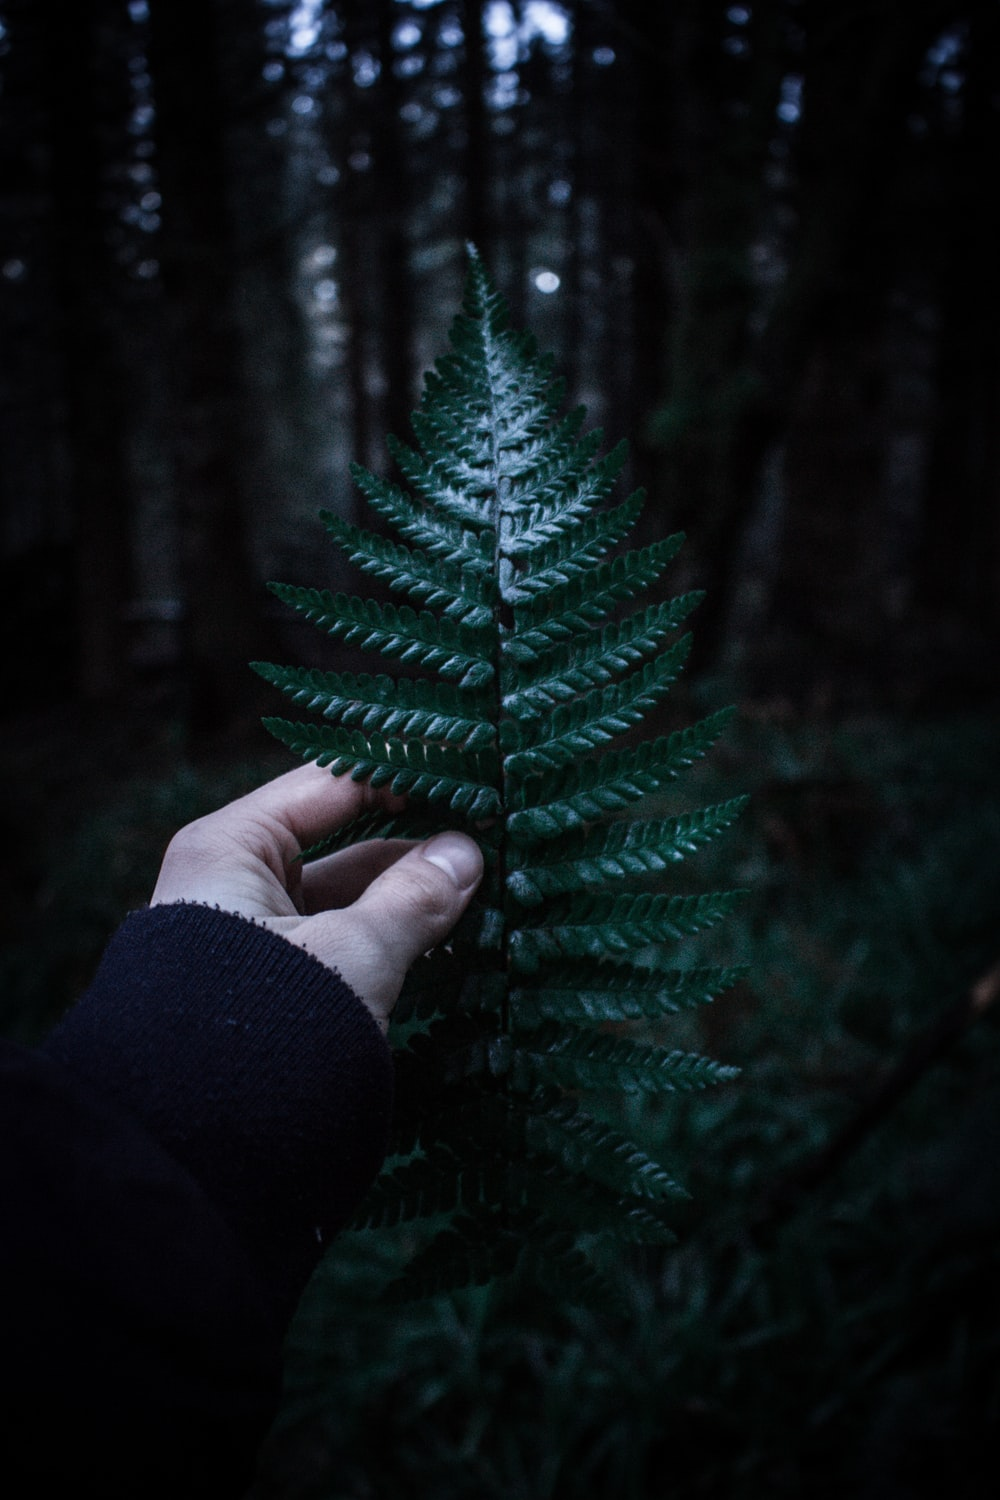 person holding fern with shallow depth field